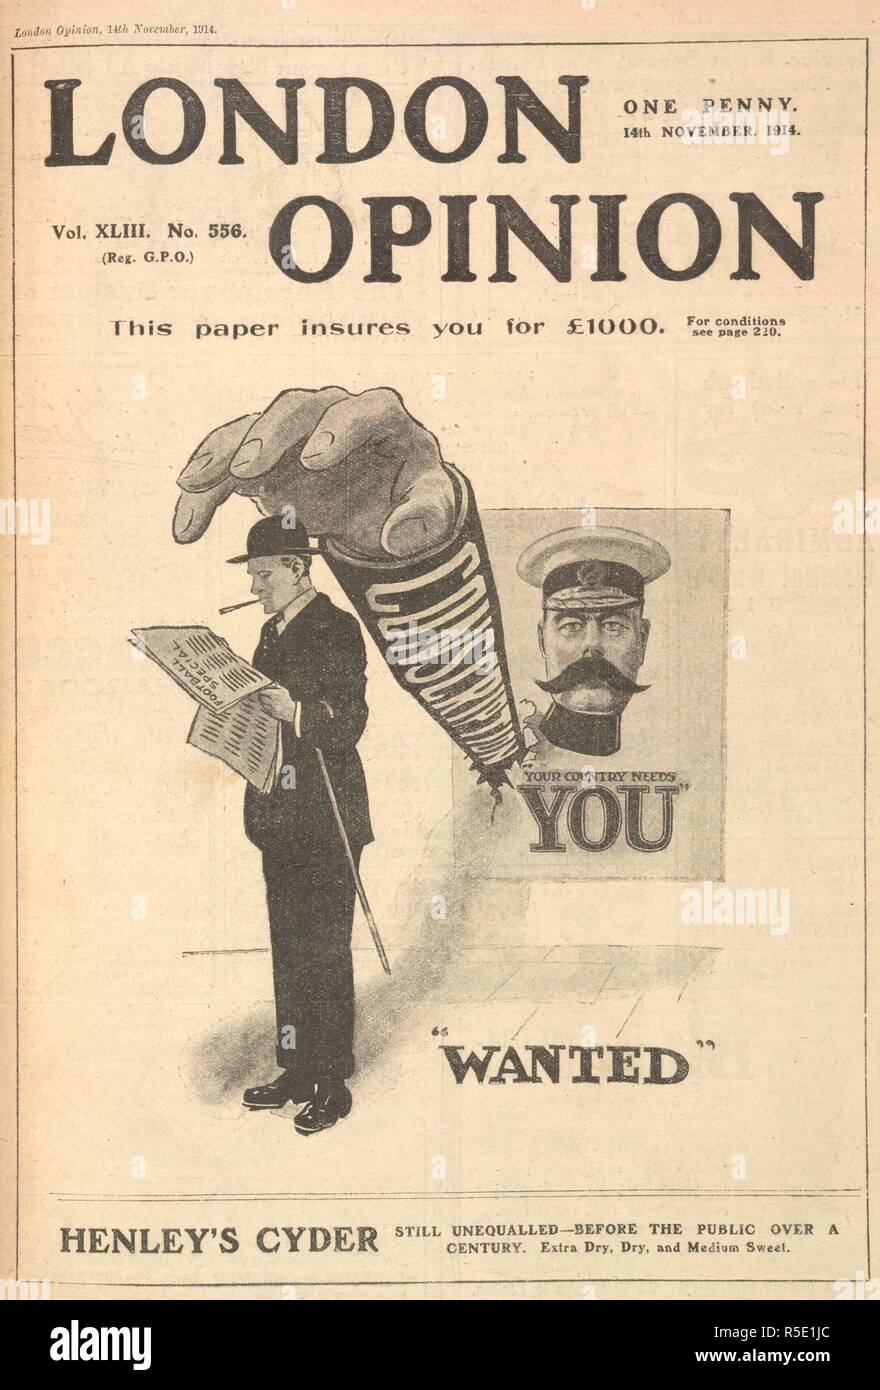 London Opinion Lord Kitchener